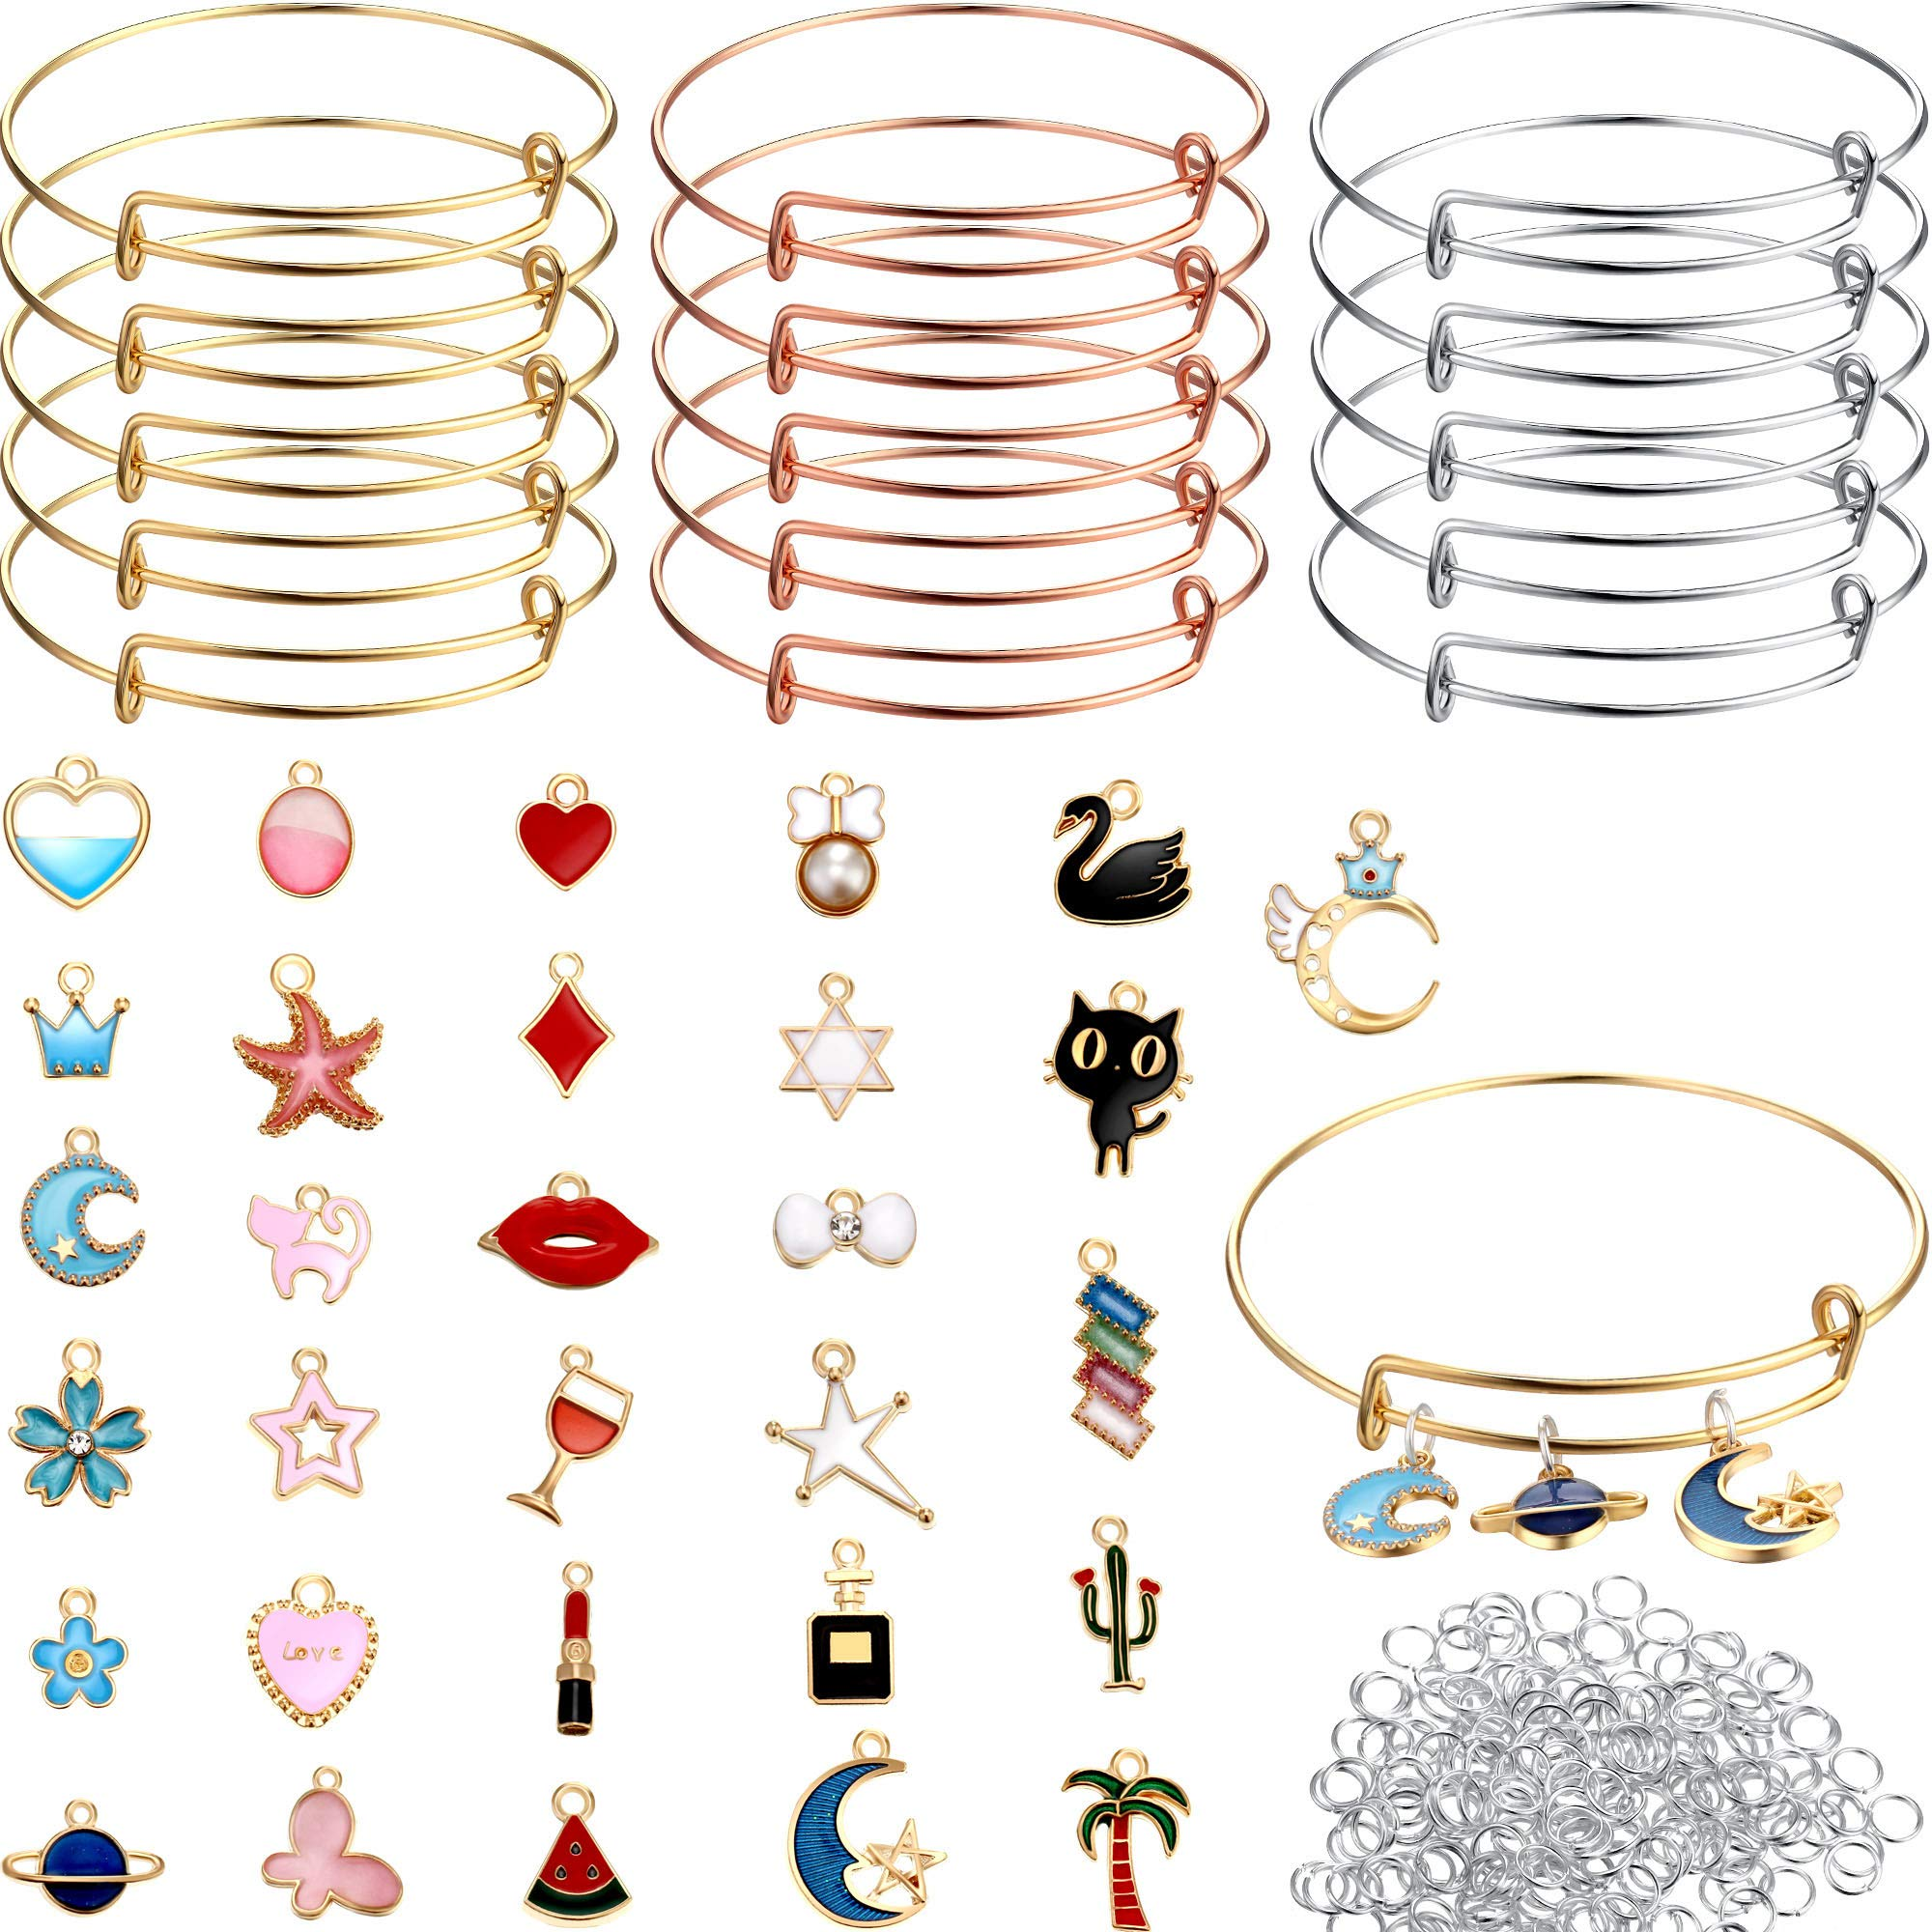 45 DIY Gold Charm Pendant Assorted with Expandable Bangle Adjustable Wire Bracelets for DIY Craft Jewelry Making, Extra 200 Pack Open Ring